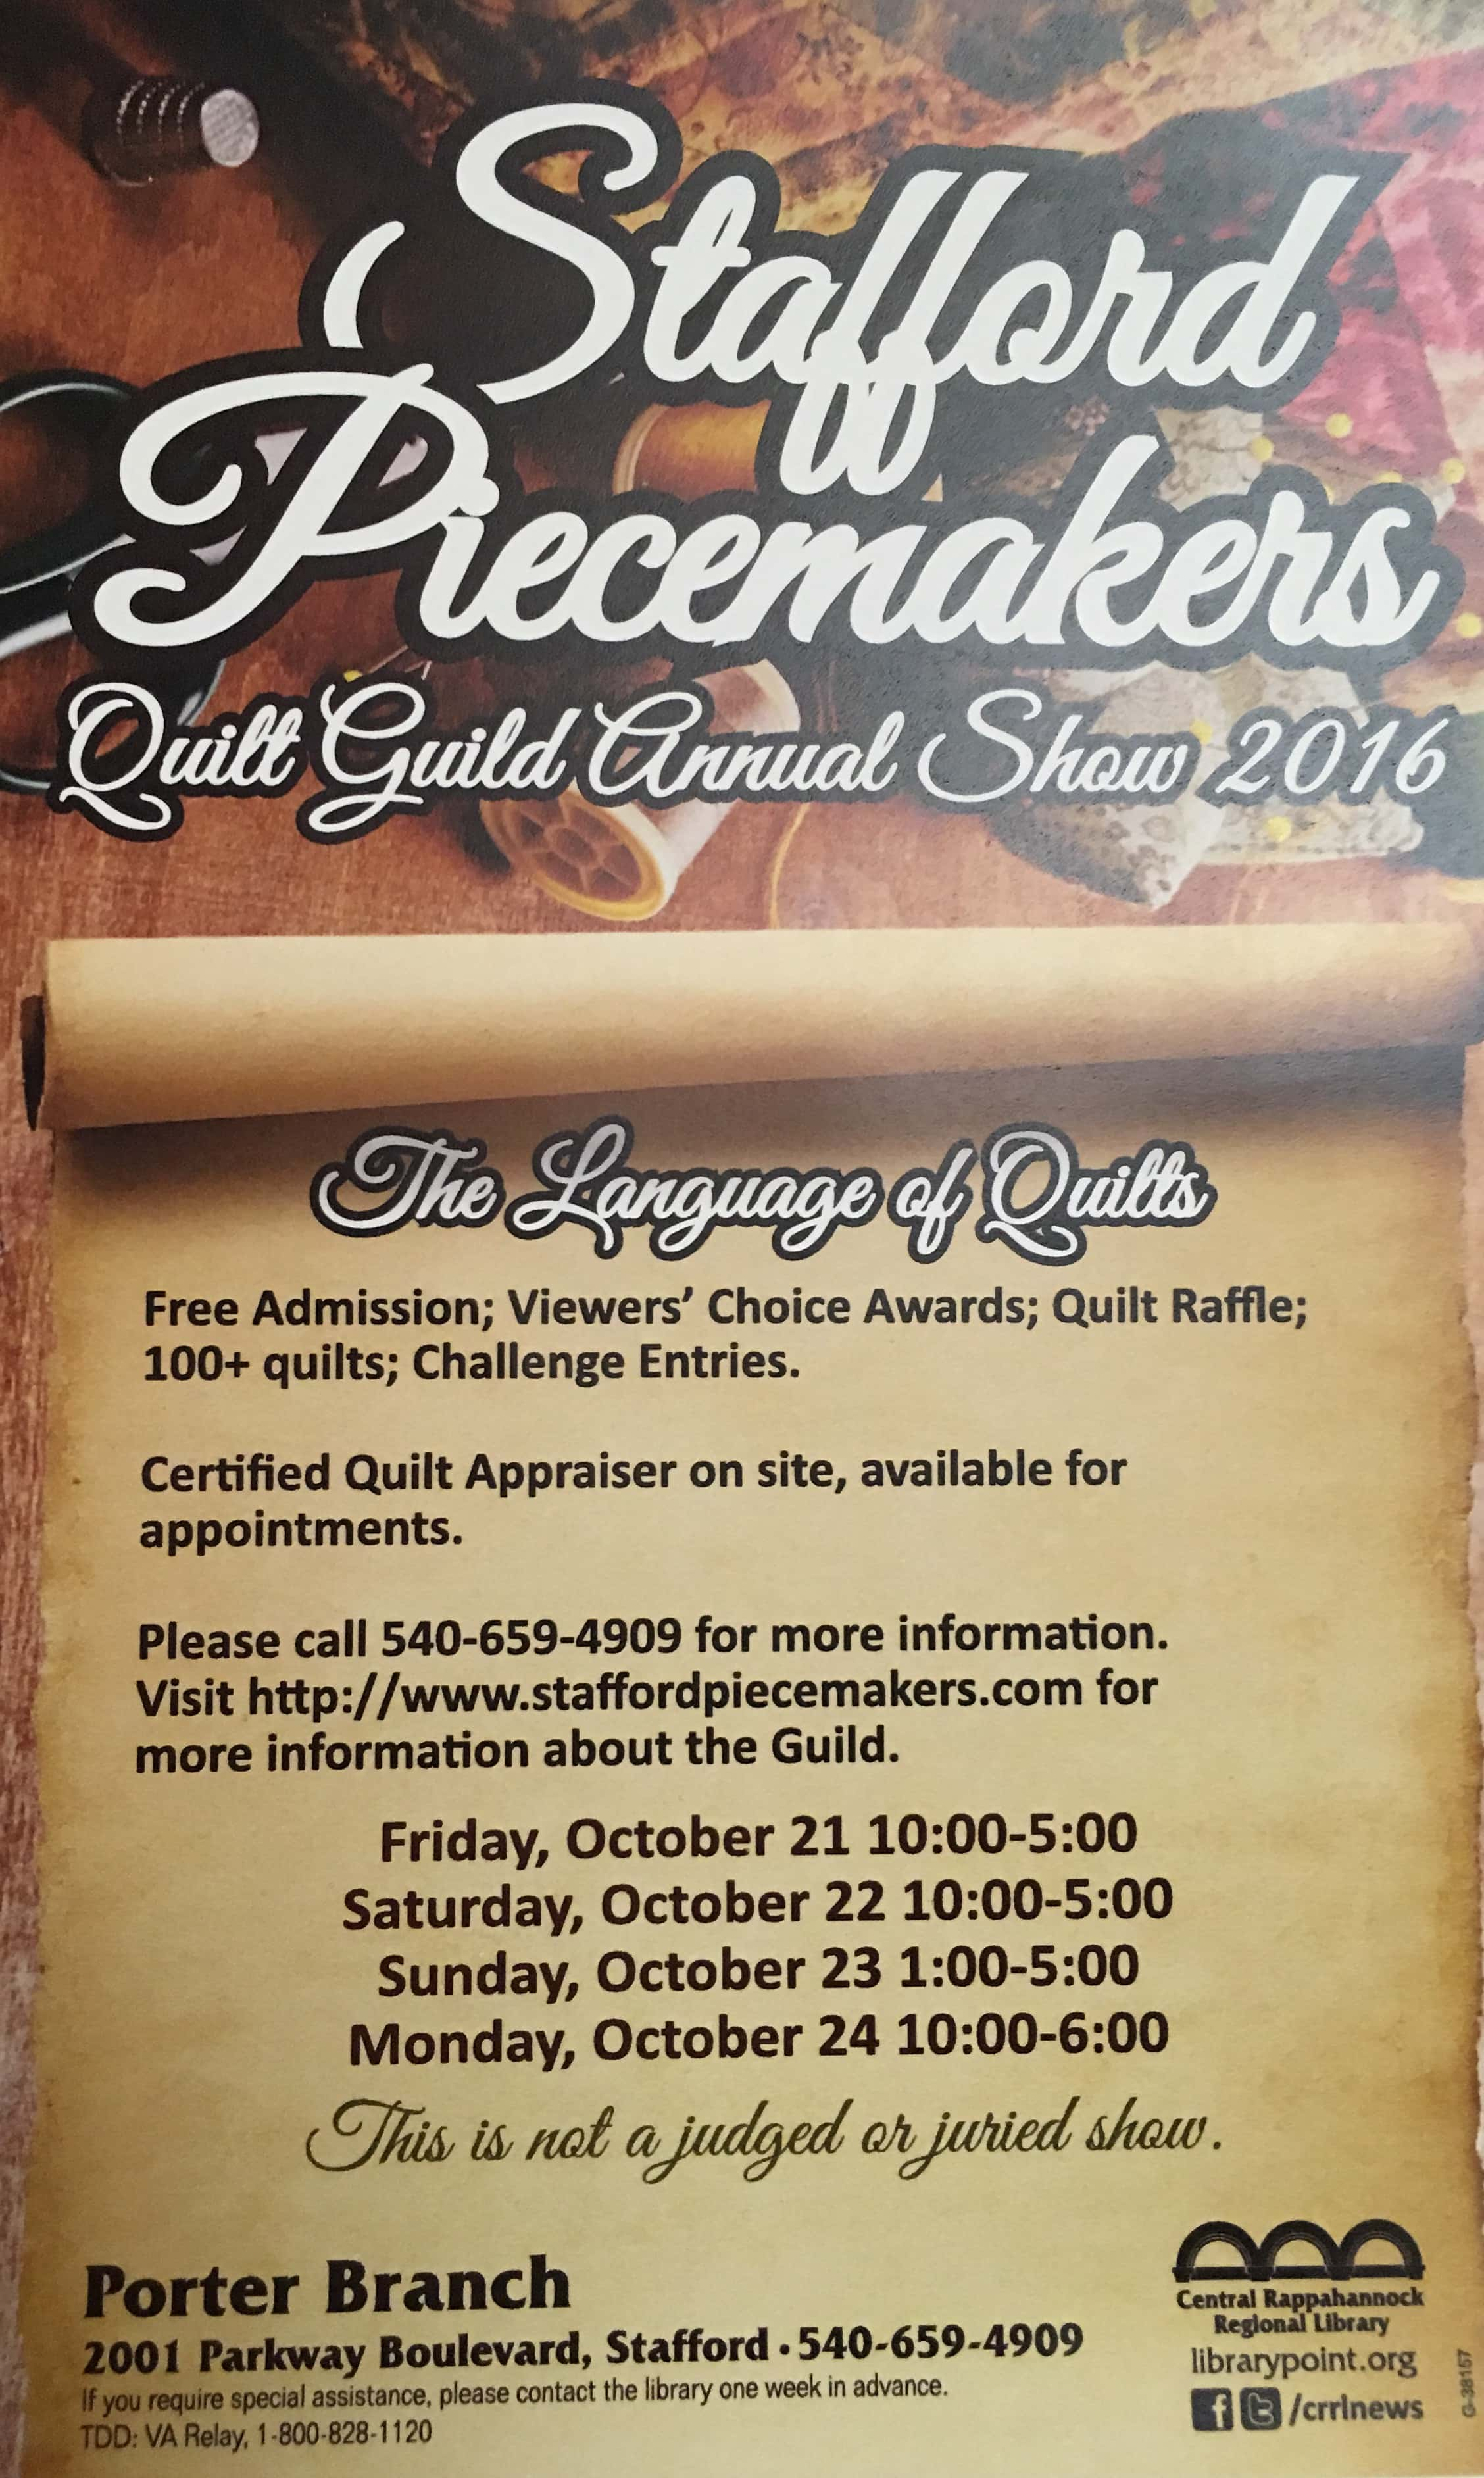 2016 Stafford Piecemakers Quilt Guild Annual Show B1015 All Of